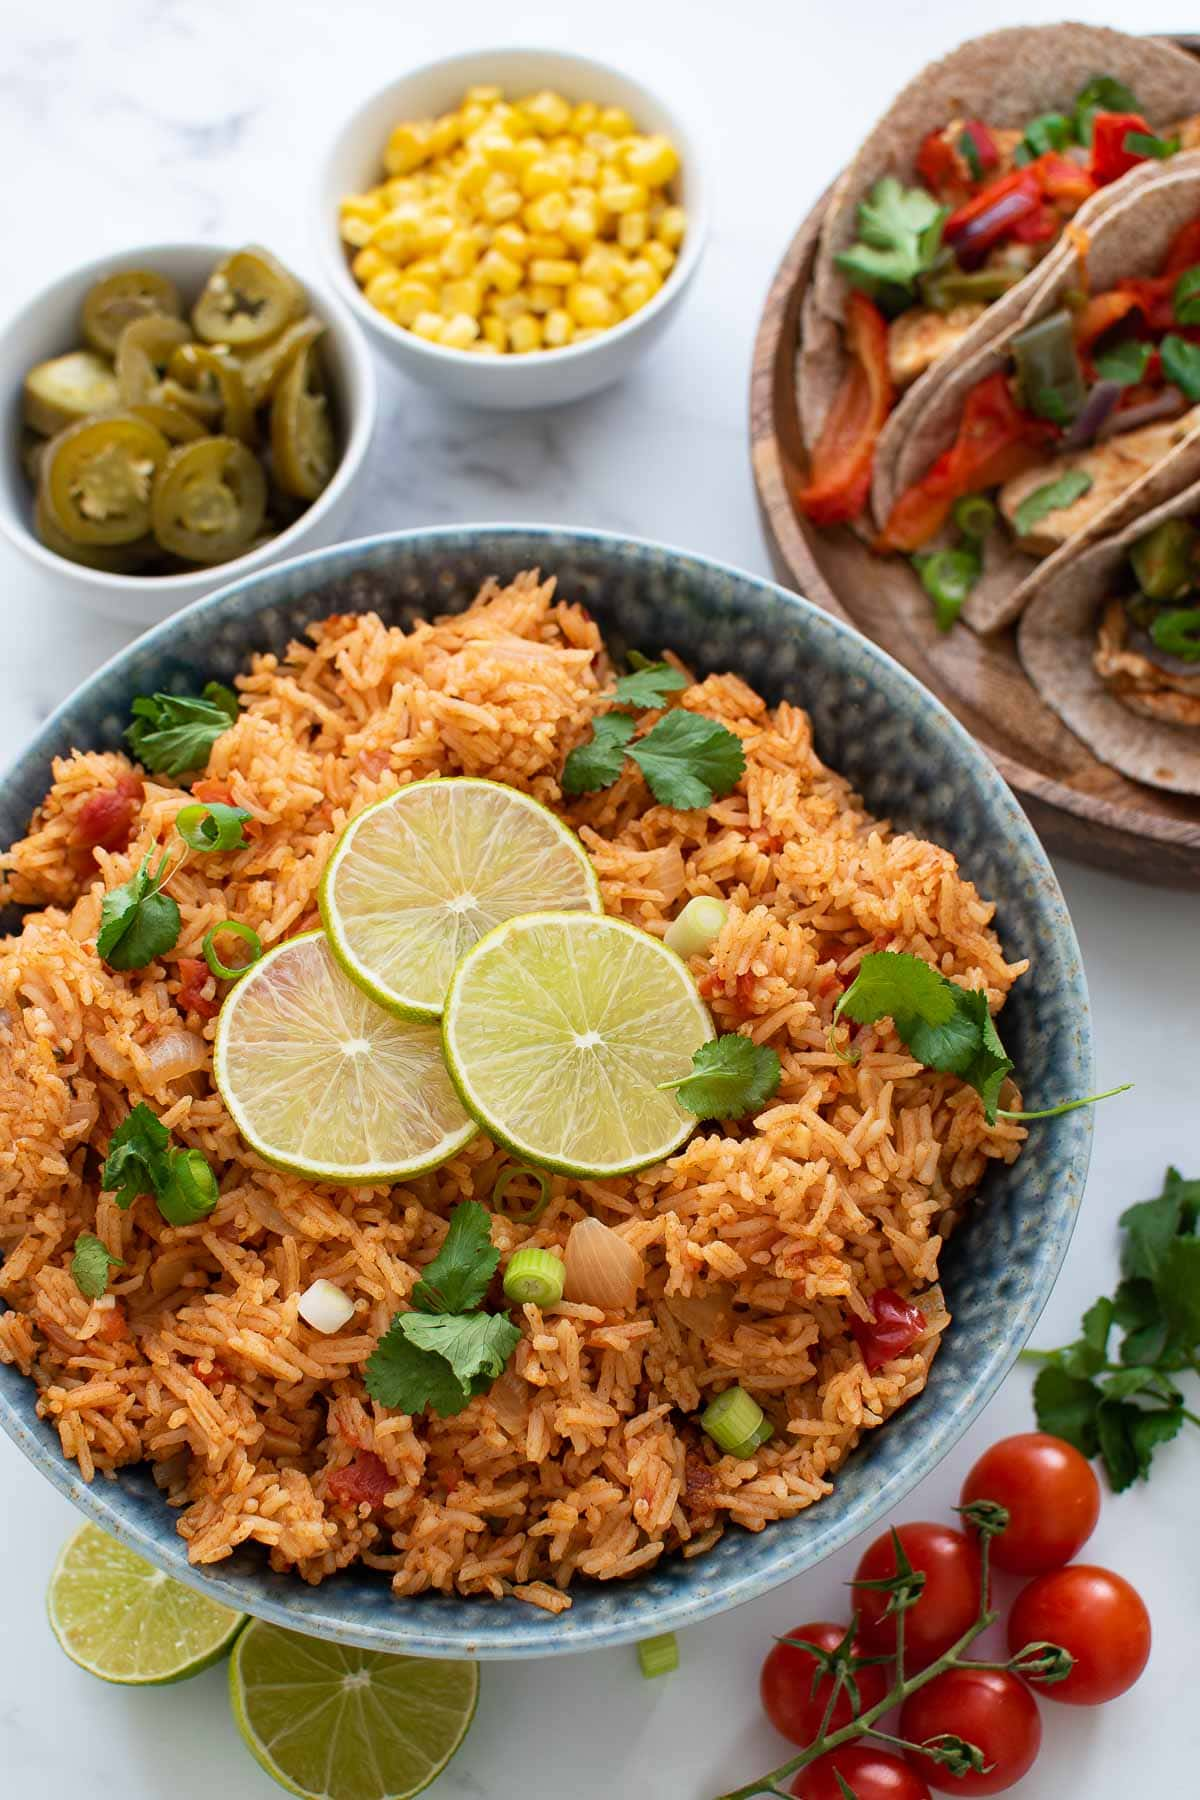 A bowl of Mexican rice garnished with lime and cilantro.